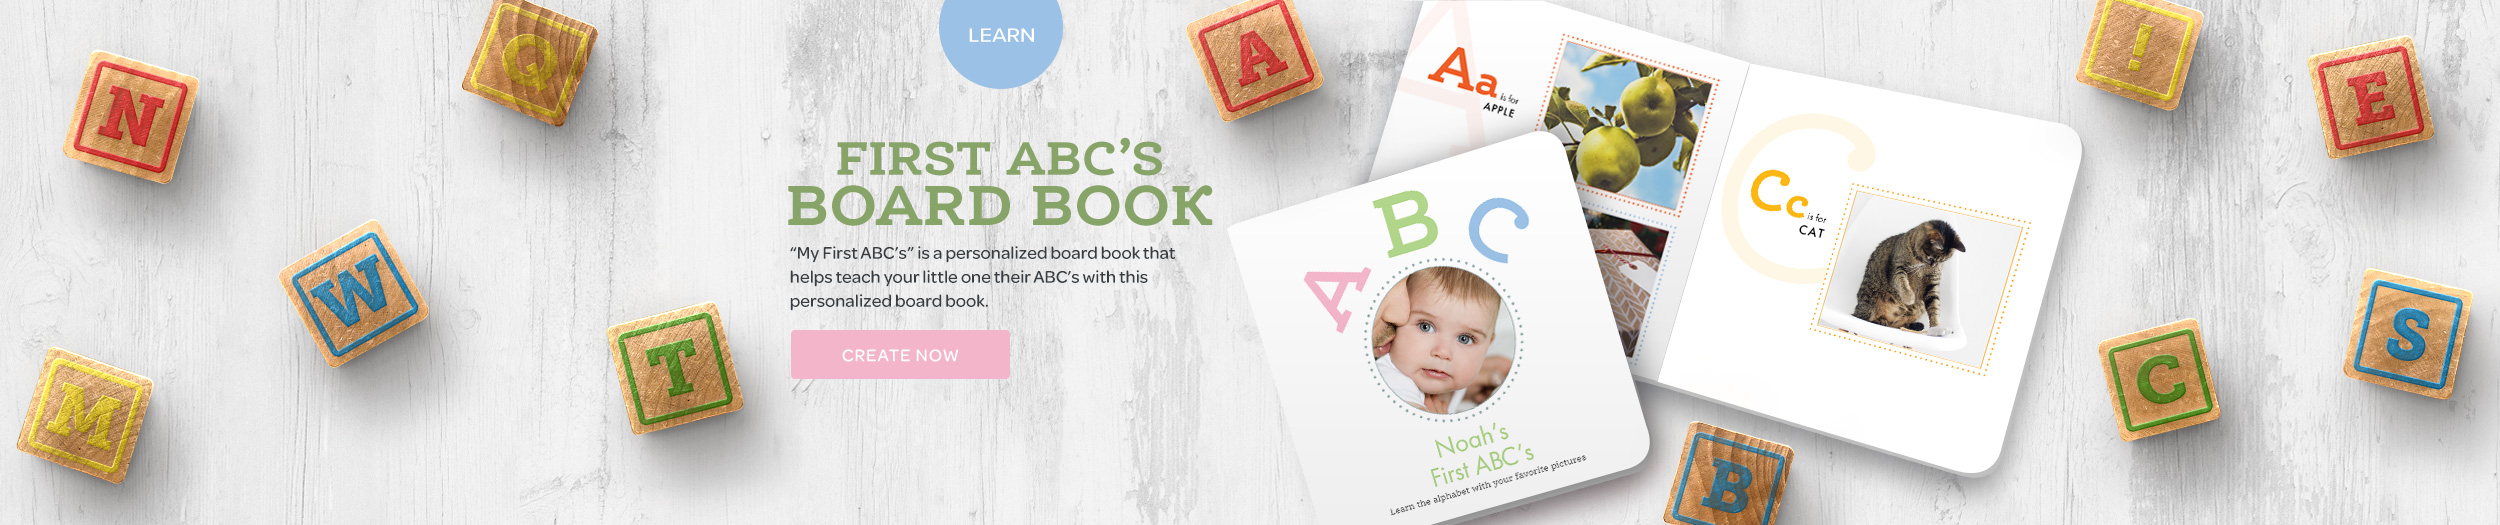 ABC Board Book